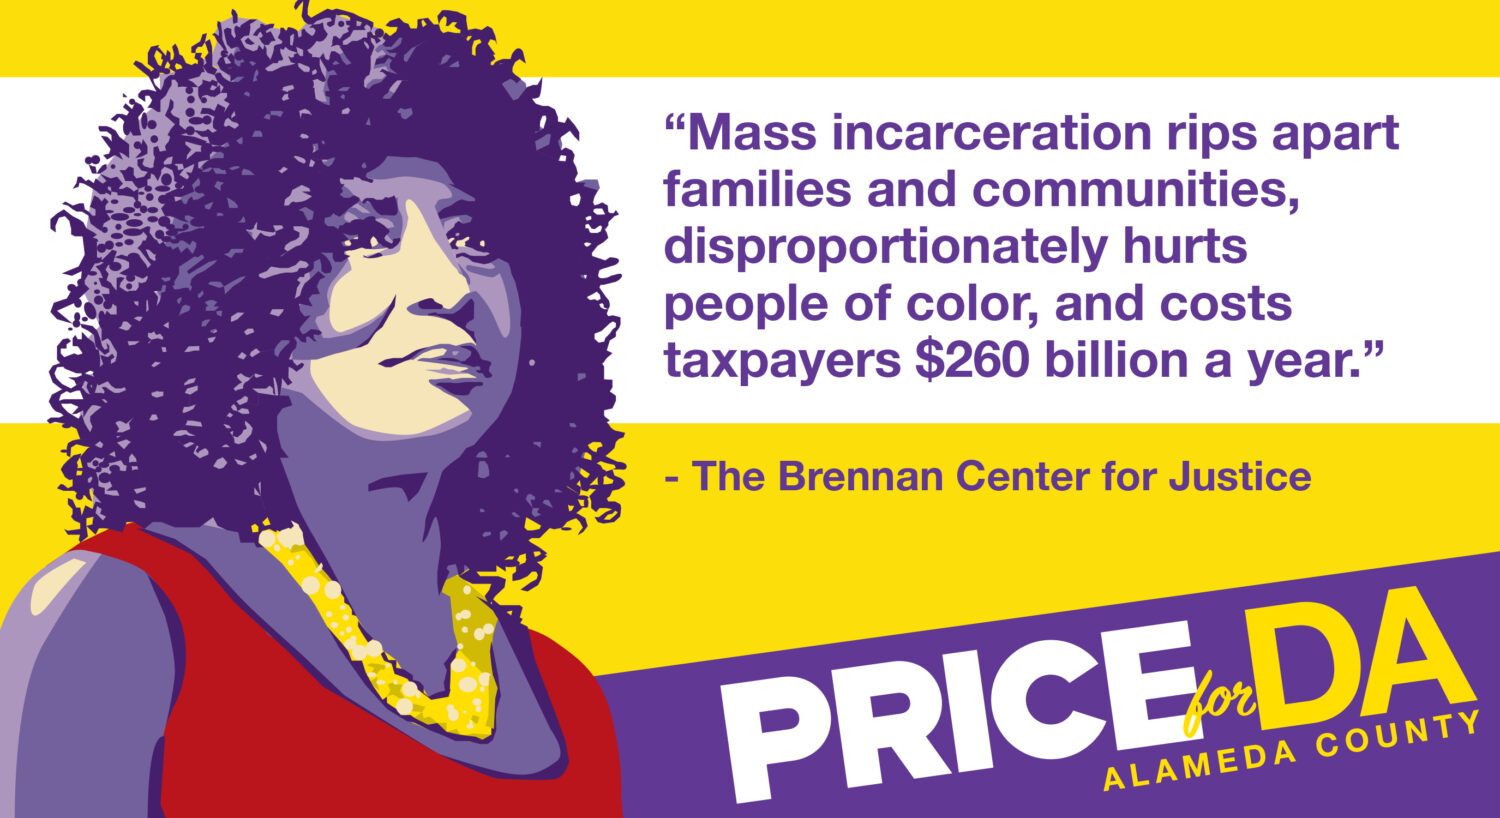 Mass incarceration rips apart families and communities, disproportionately hurts people of color, and costs taxpayers $260 billion a year.